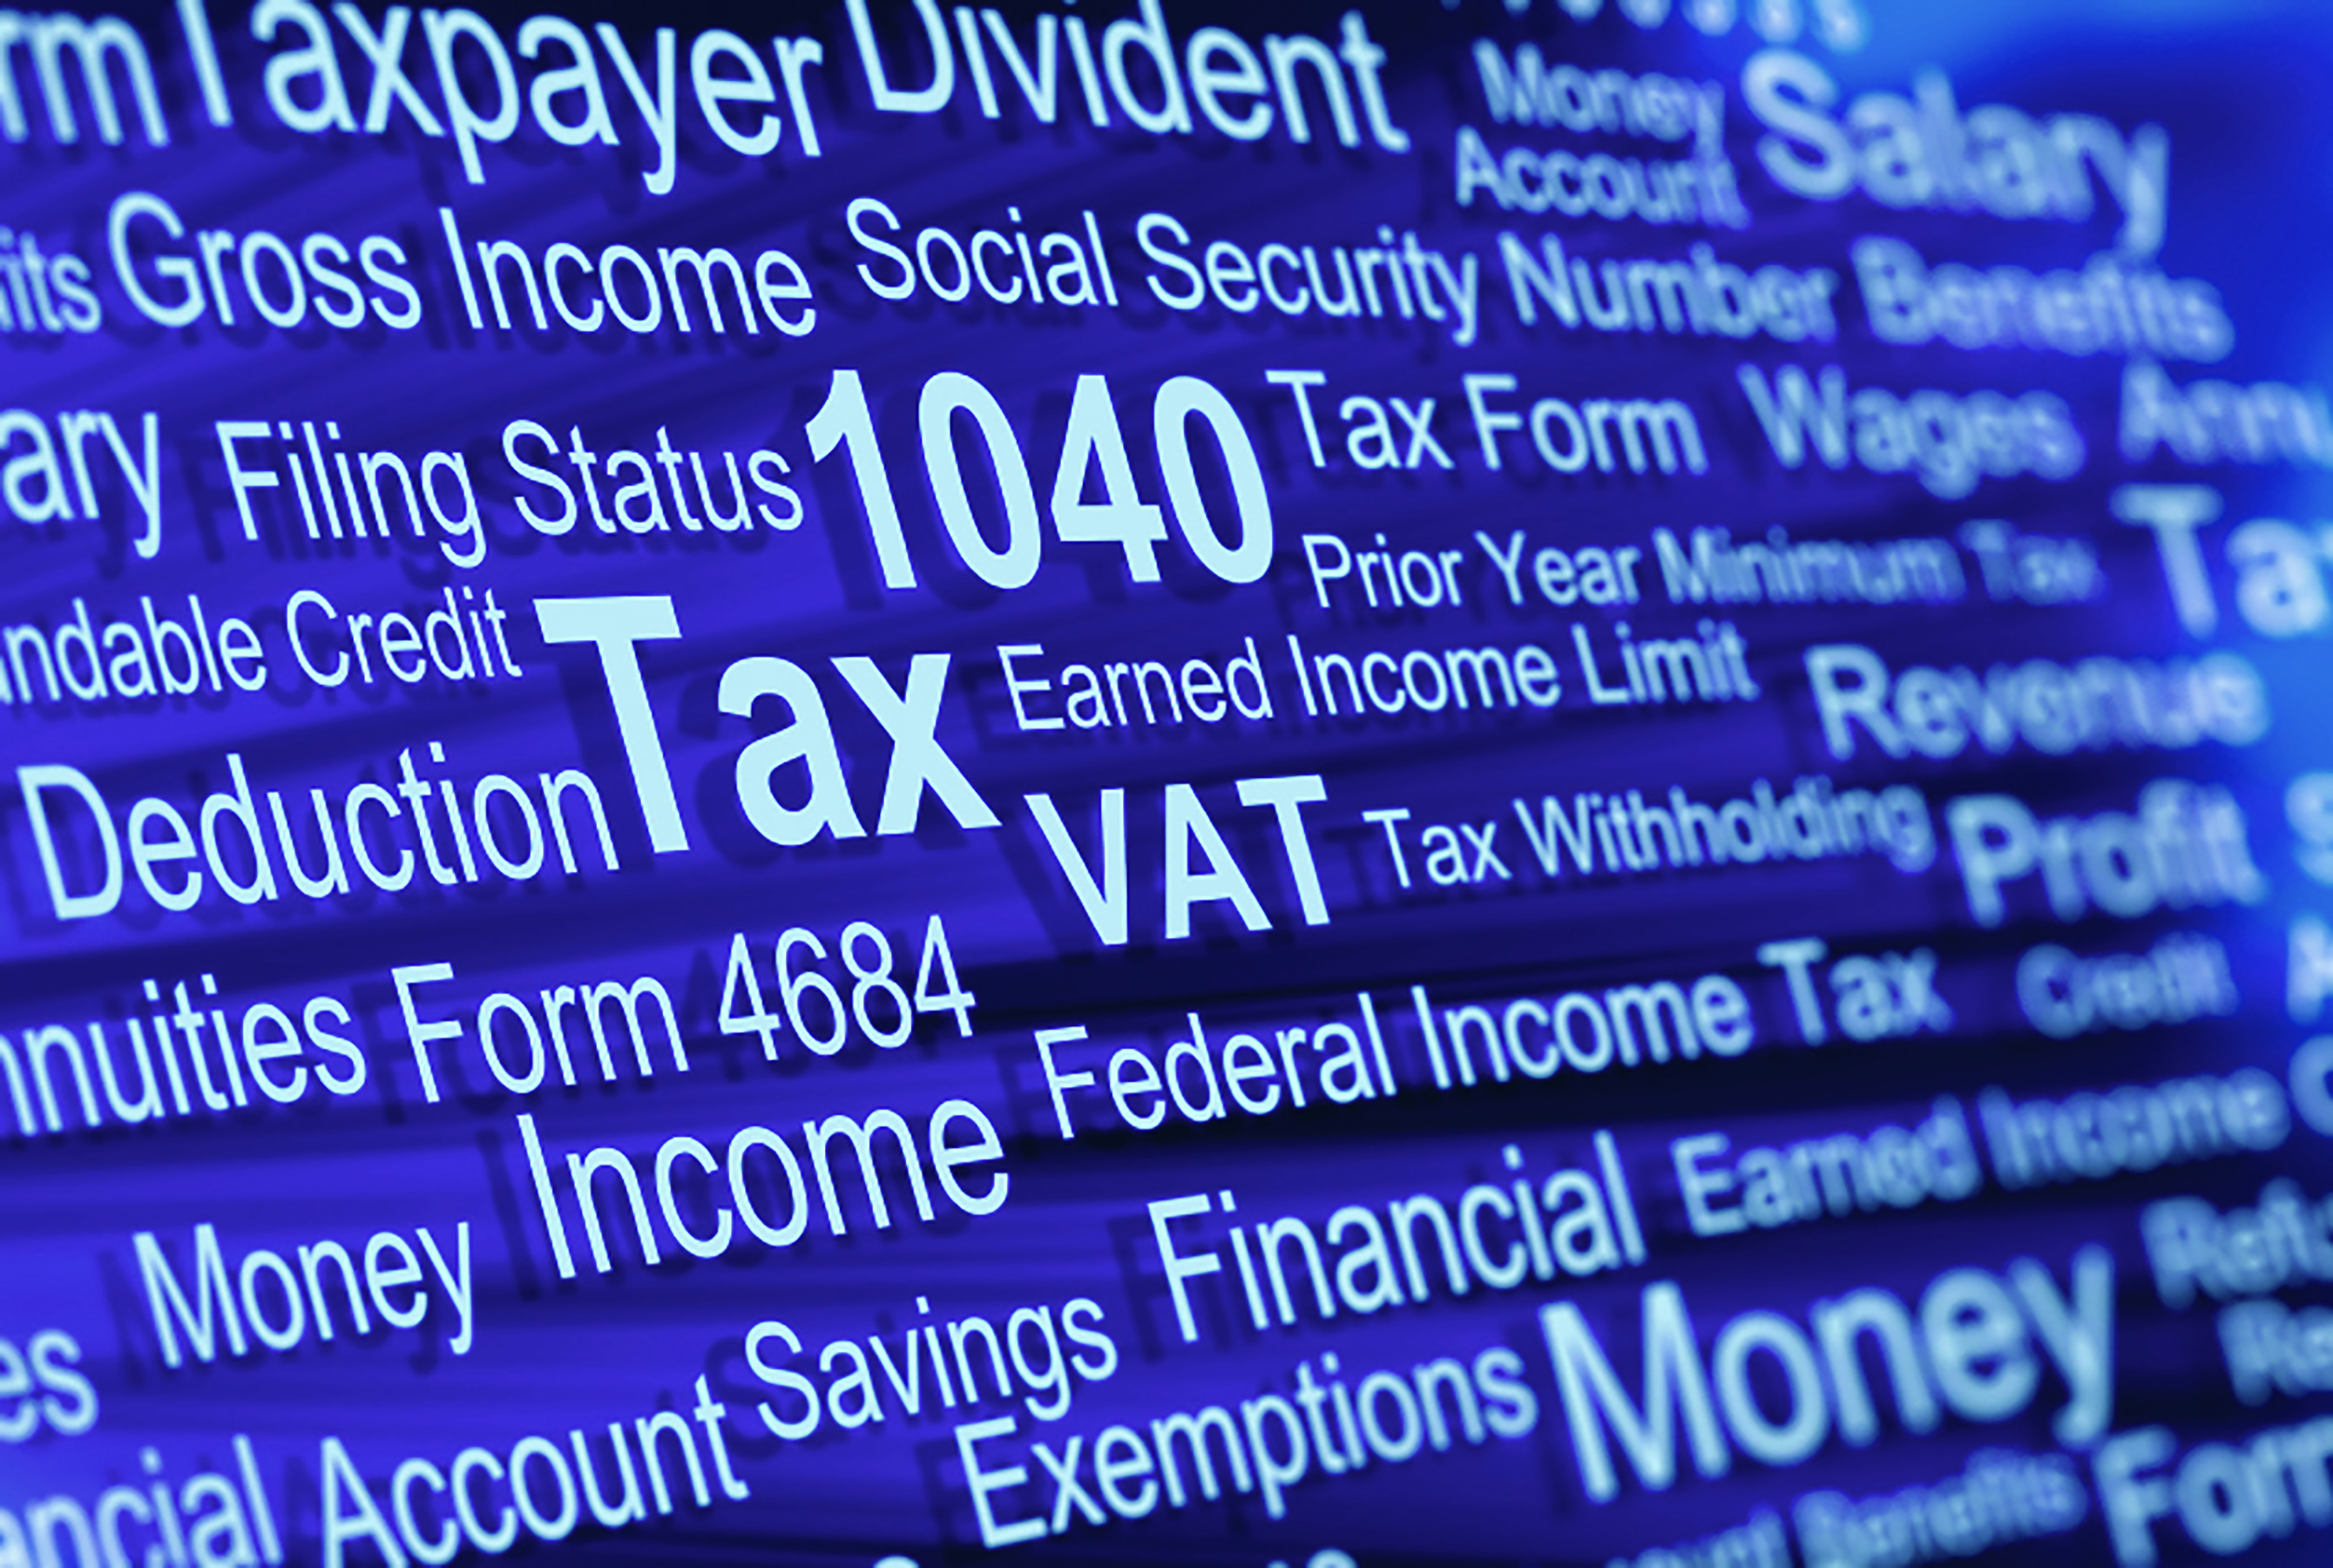 Minimize Your Tax Exposure